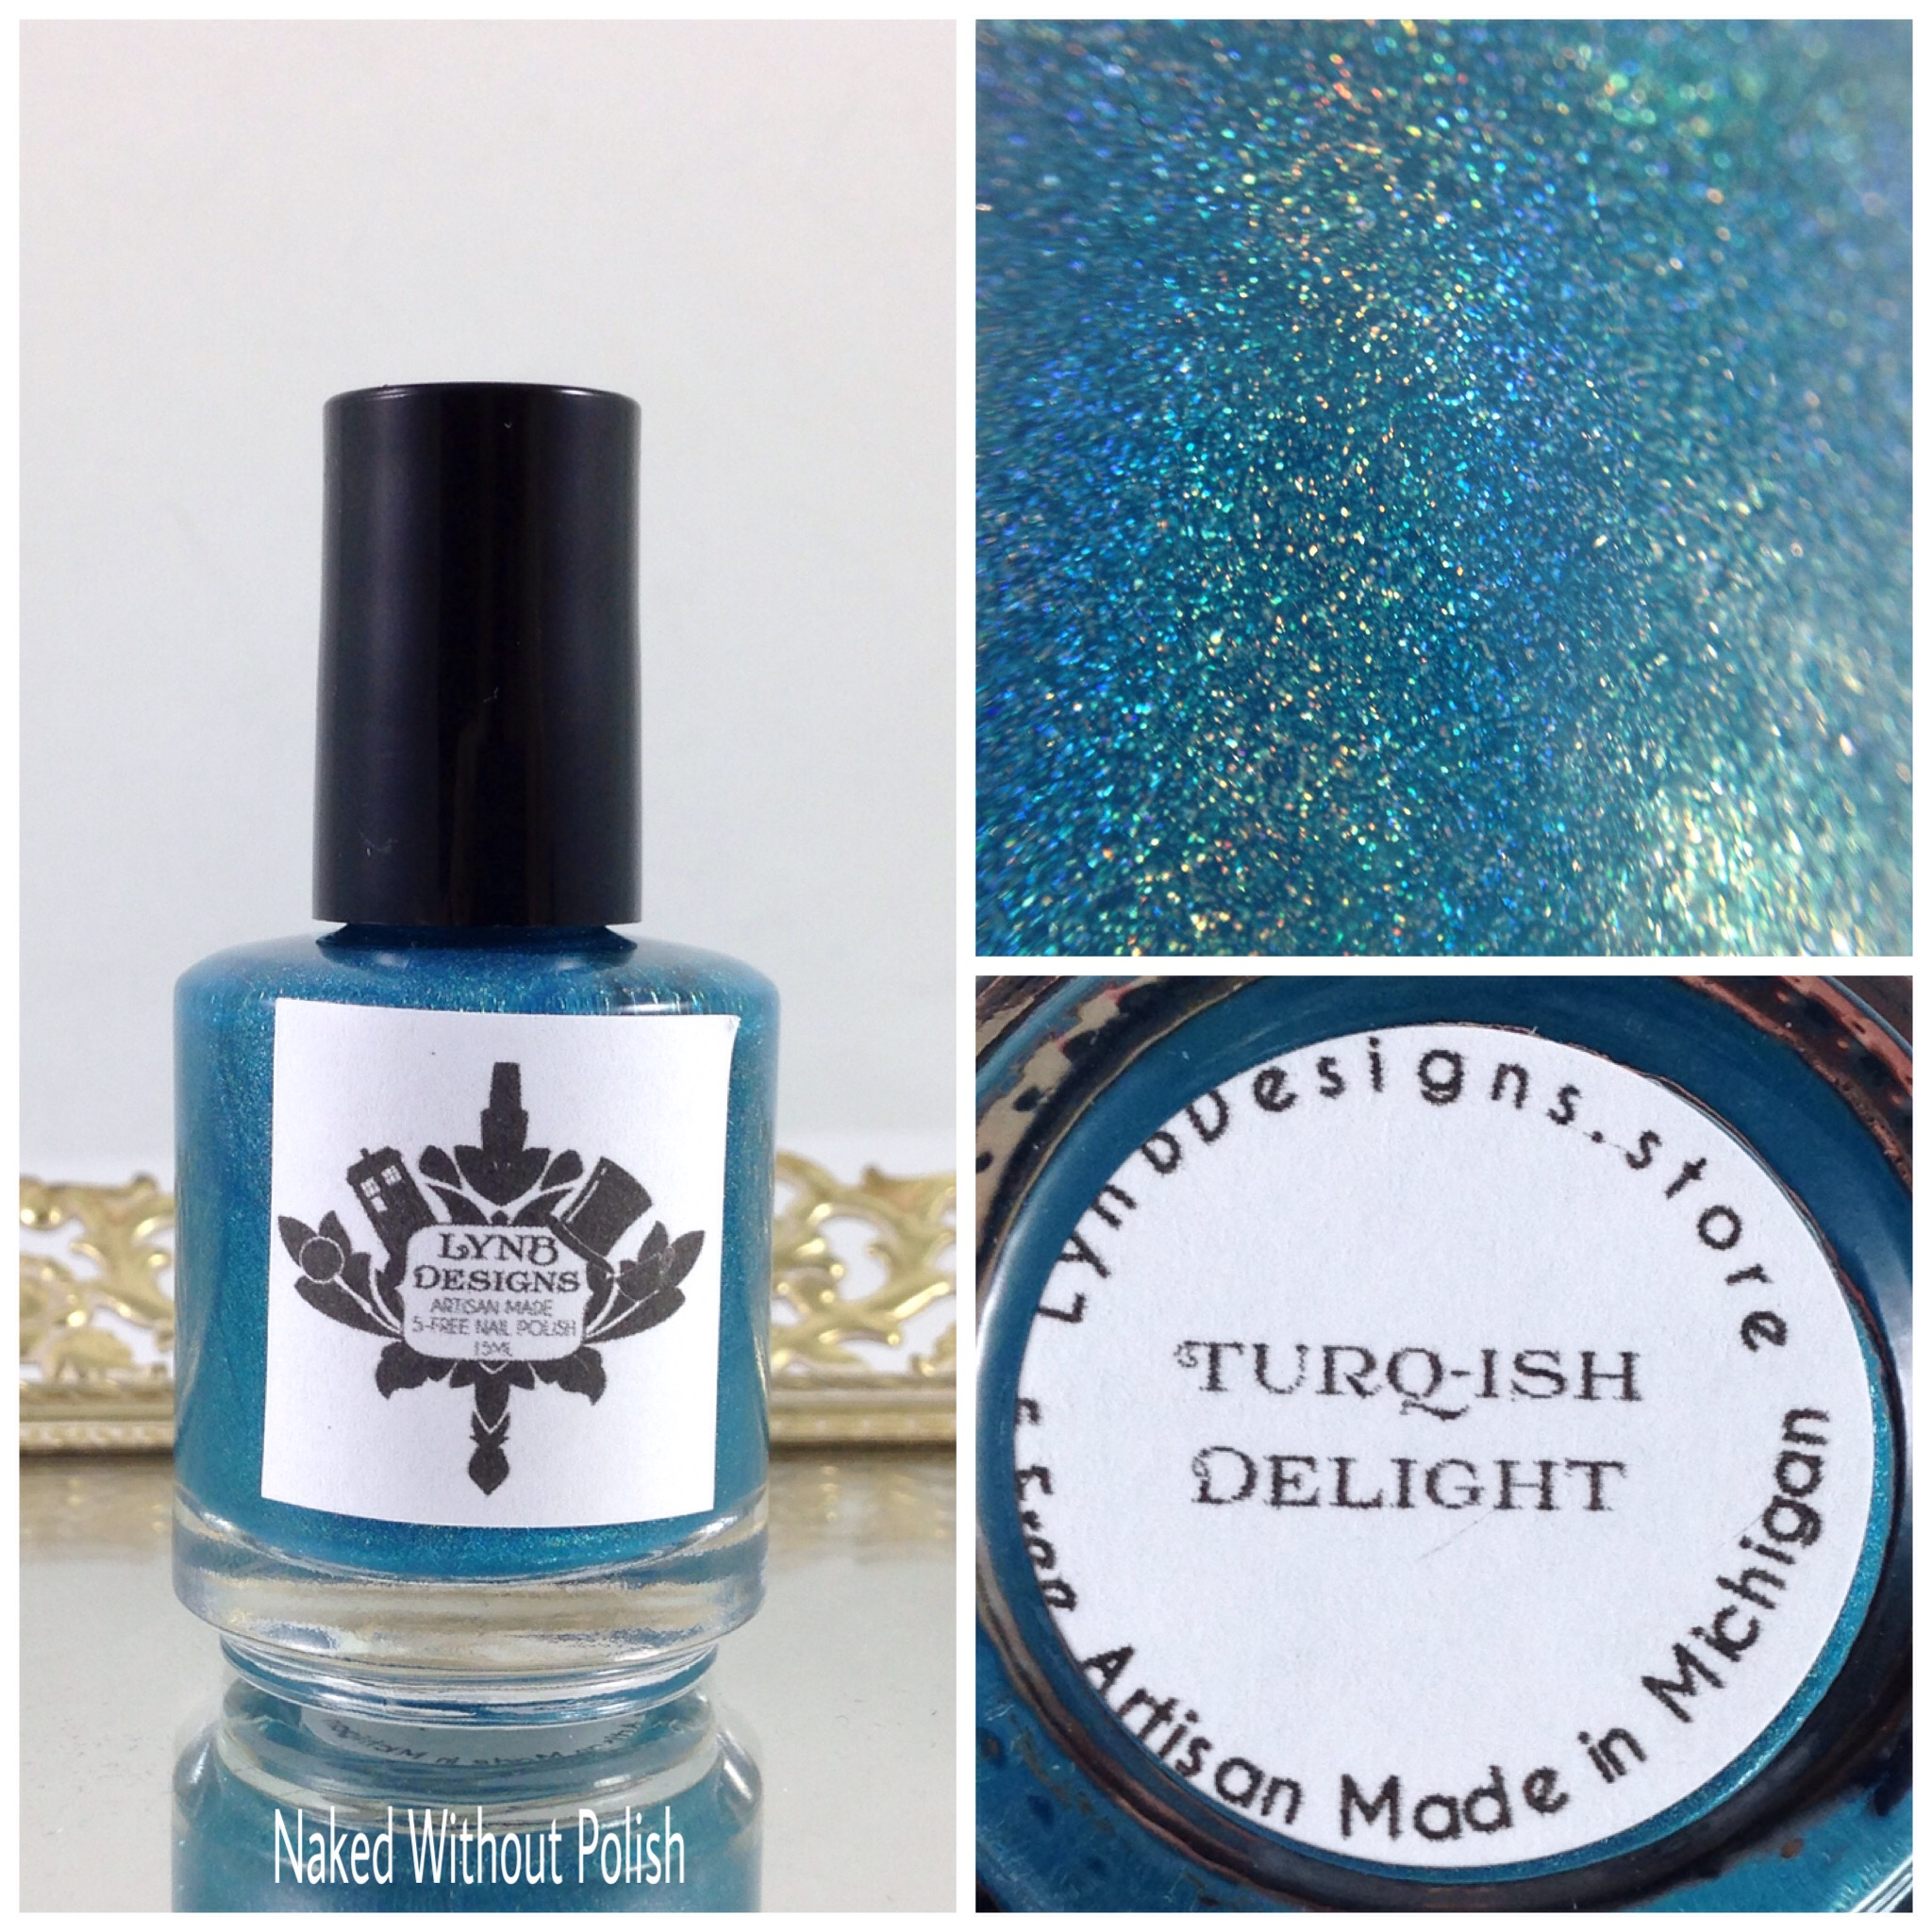 LynBDesigns-Turq-ish-Delight-1